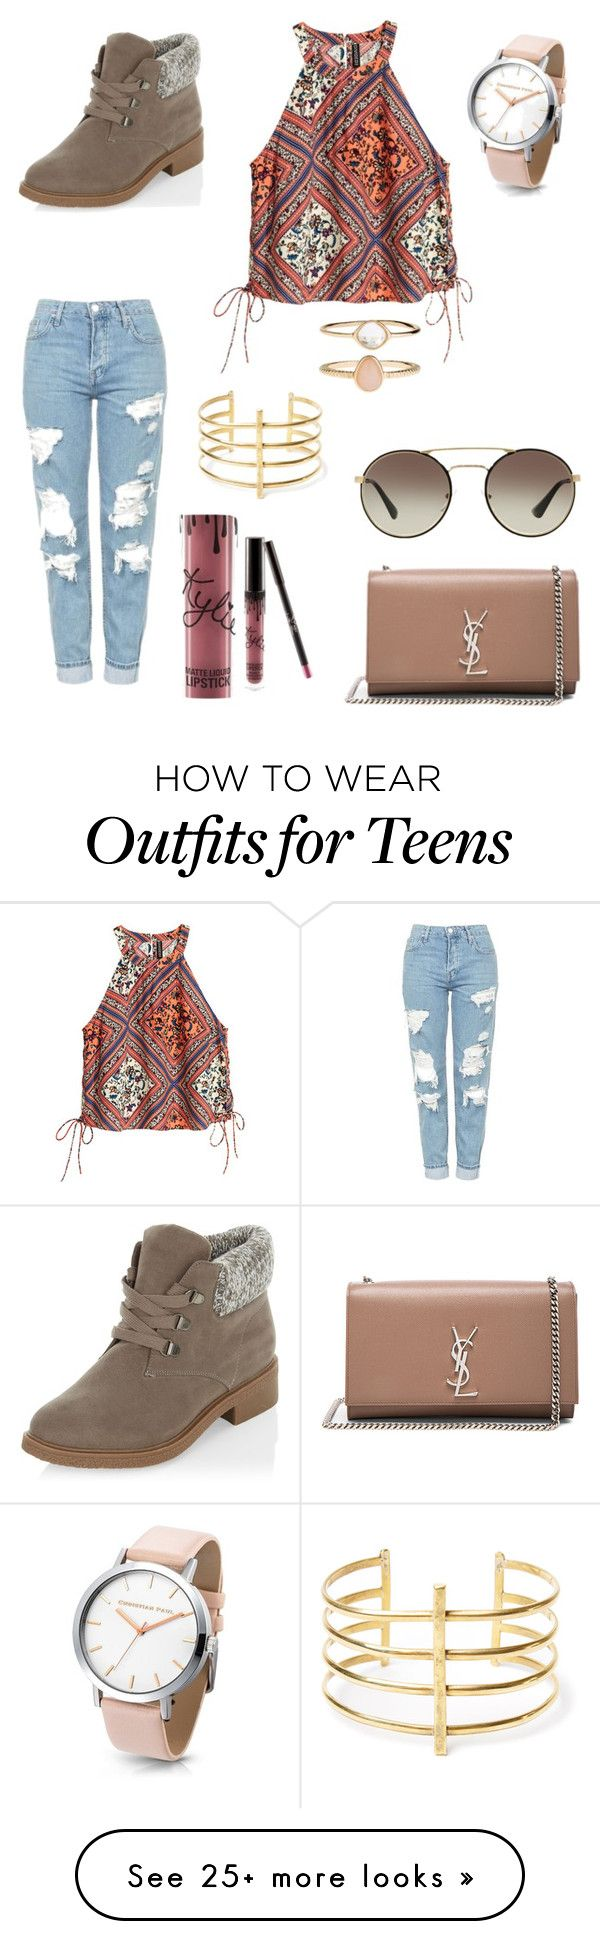 """""""SUPA SUPA cutes"""" by kaylens-i on Polyvore featuring New Look, Topshop, Yves Saint Laurent, Prada, Kylie Cosmetics, BauXo and Accessorize"""